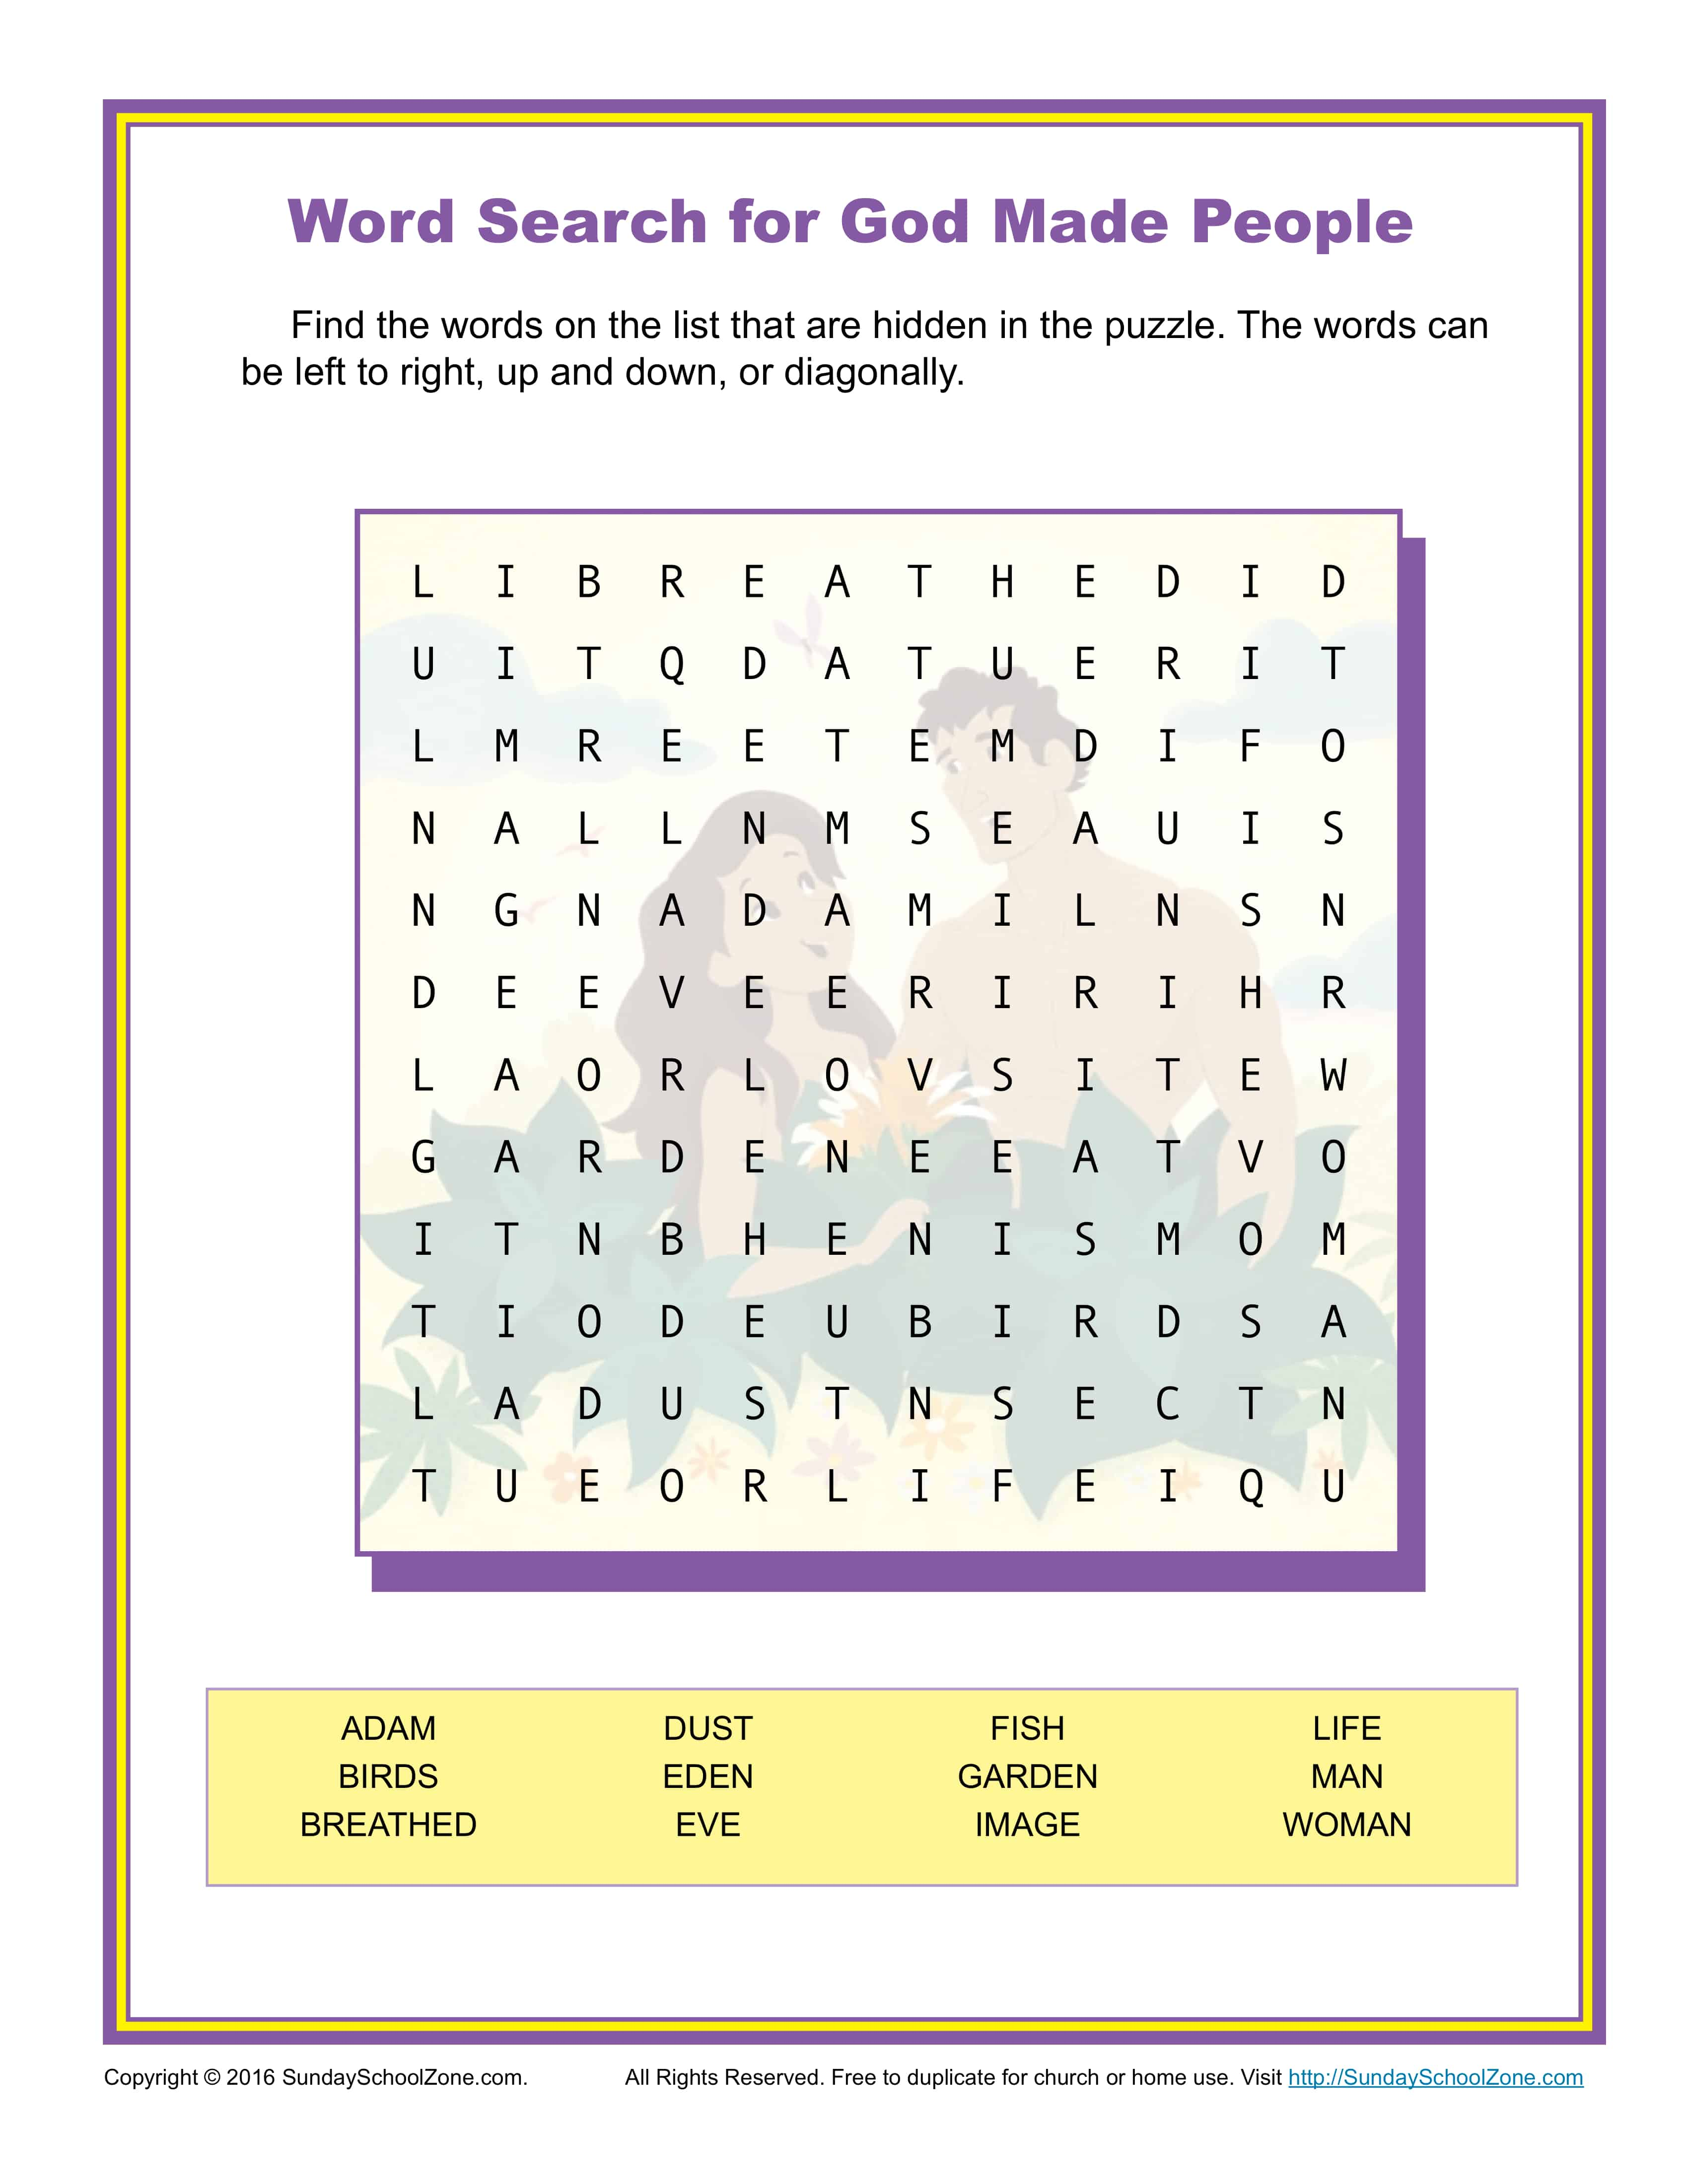 God Made People Word Search Children 39 s Bible Activities